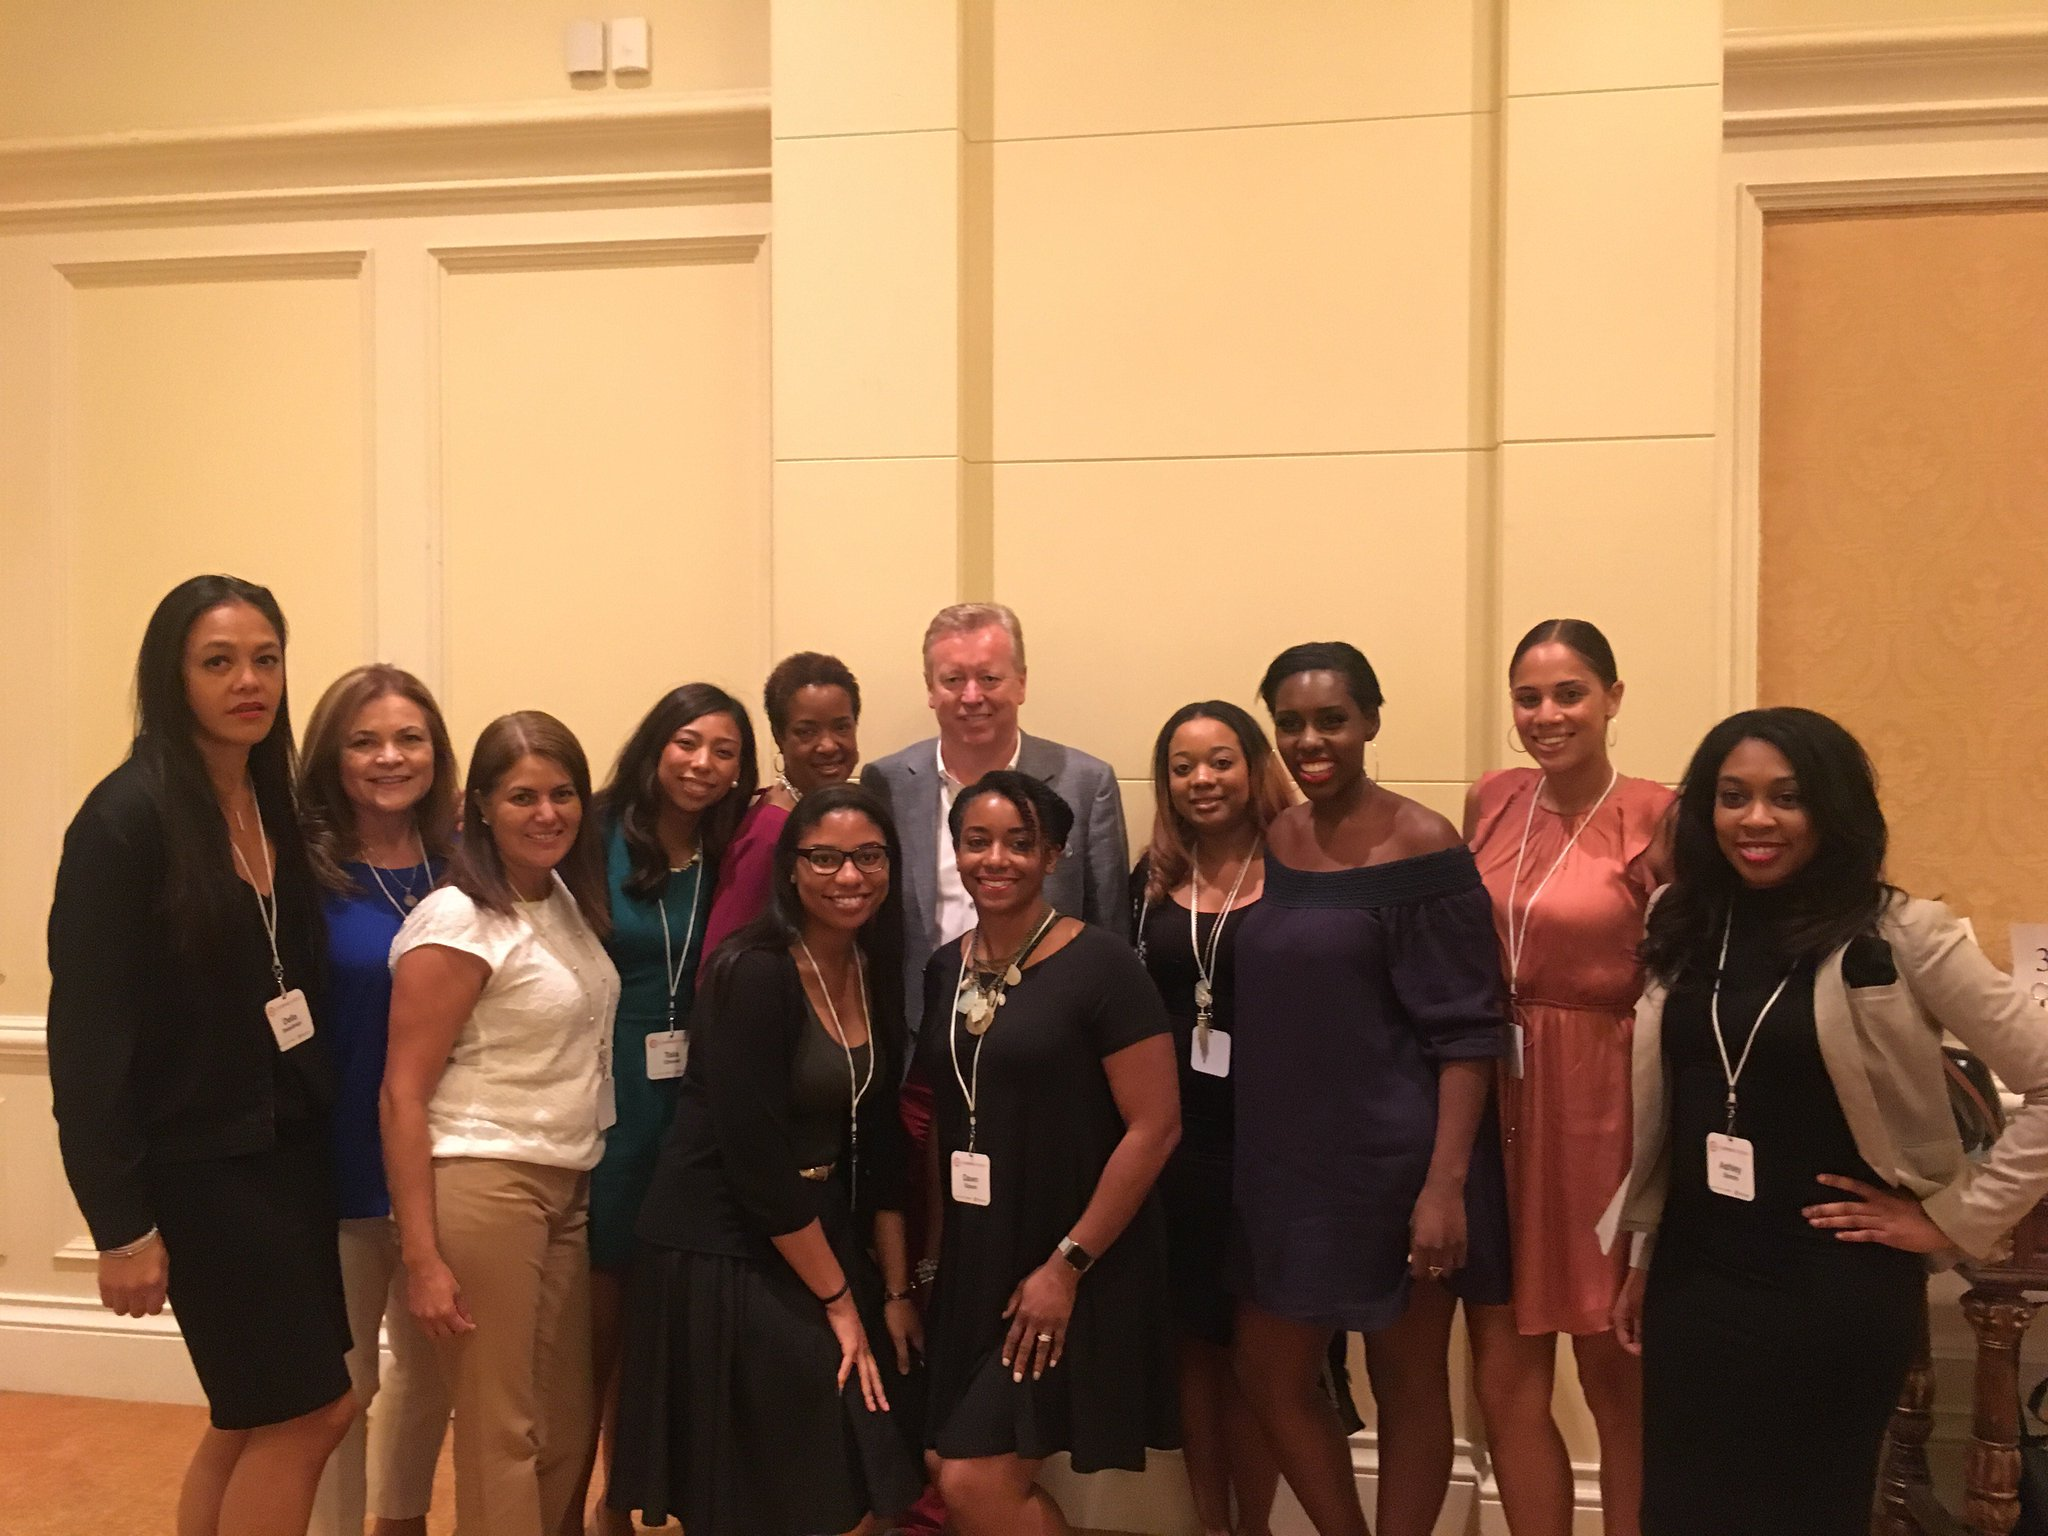 Our CEO John Saunders and the rest of our FH crew wrapping up a successful and empowering #ColorComm! #C2Miami https://t.co/HtOVnAGLcn